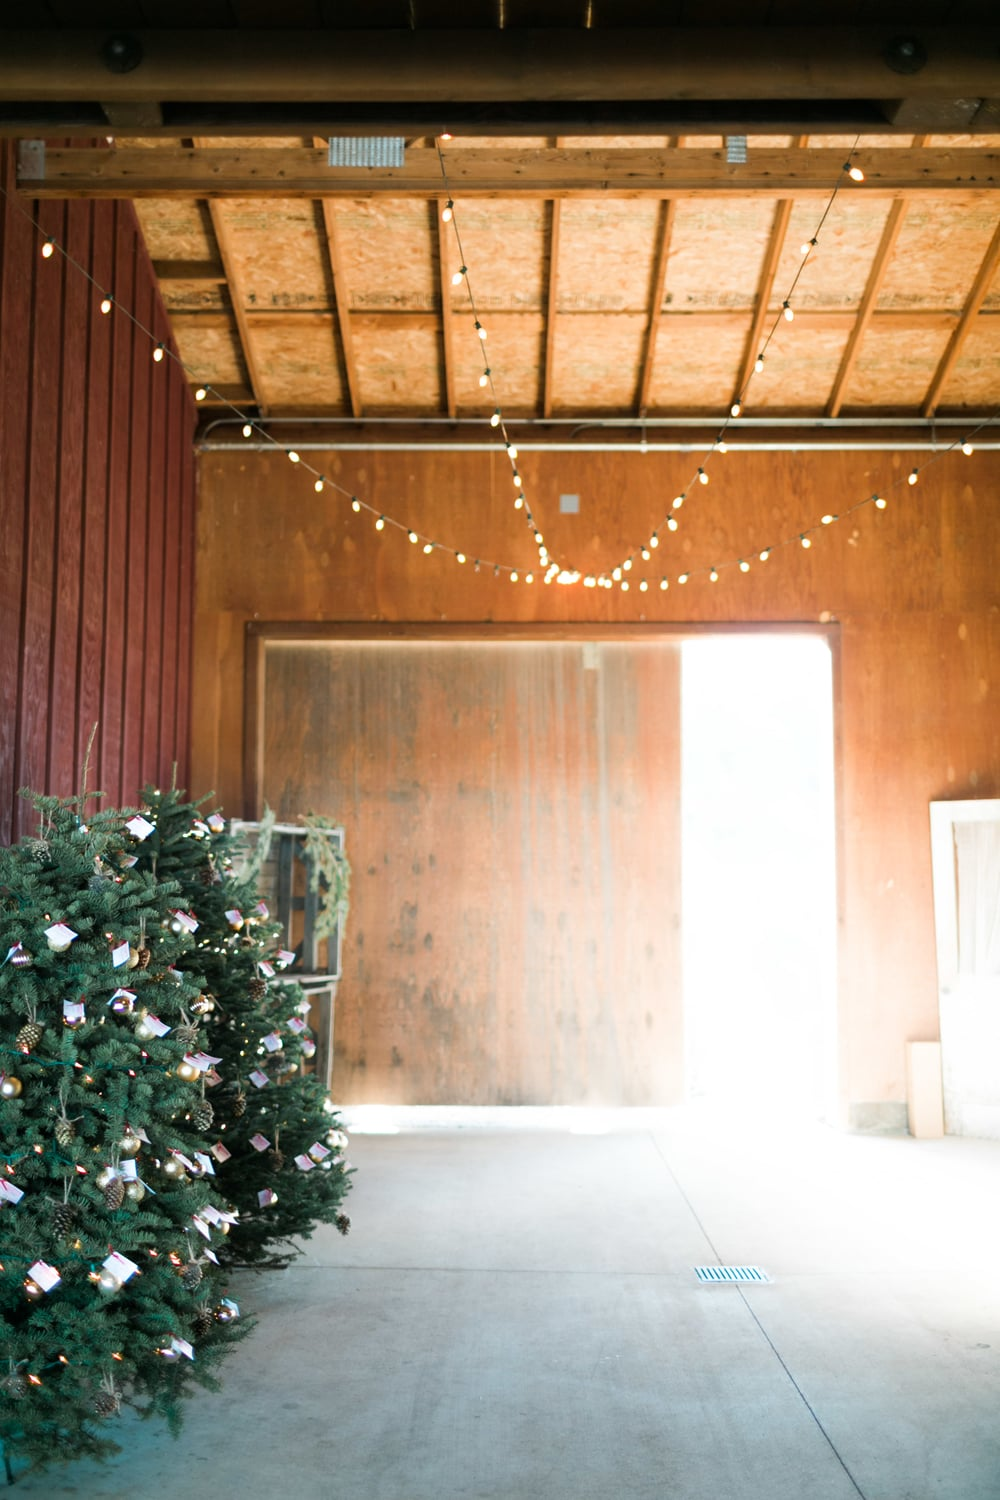 Natalie_Schutt_Photography_Winter_Wedding_San_Luis_Obispo-84.jpg